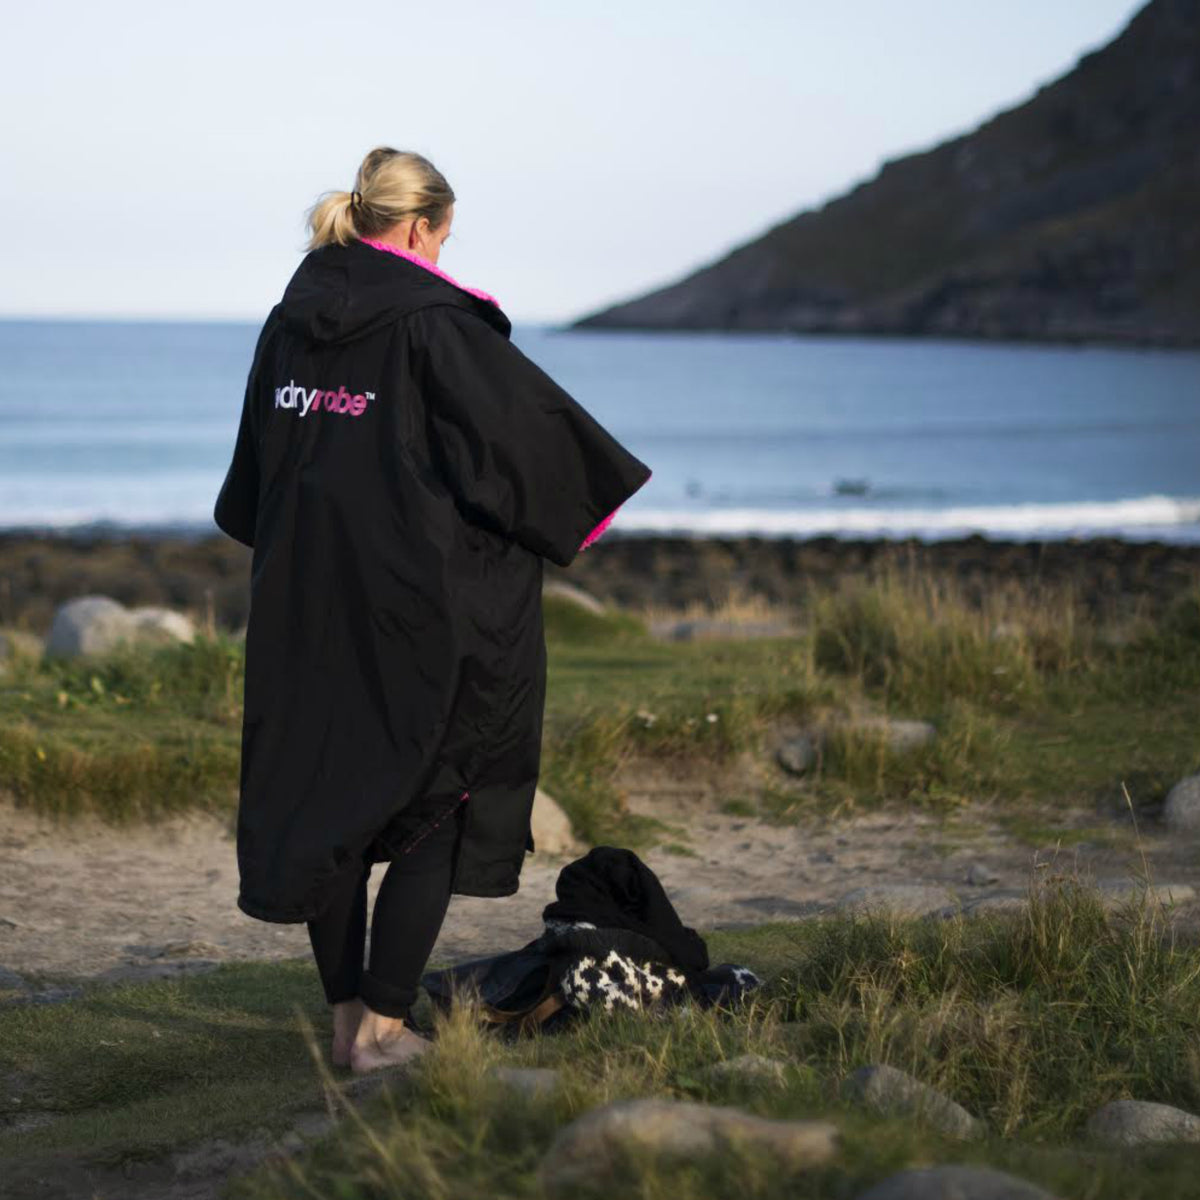 1| dryrobe Advance Short Sleeve Black Pink Female Beach Lifestyle Image